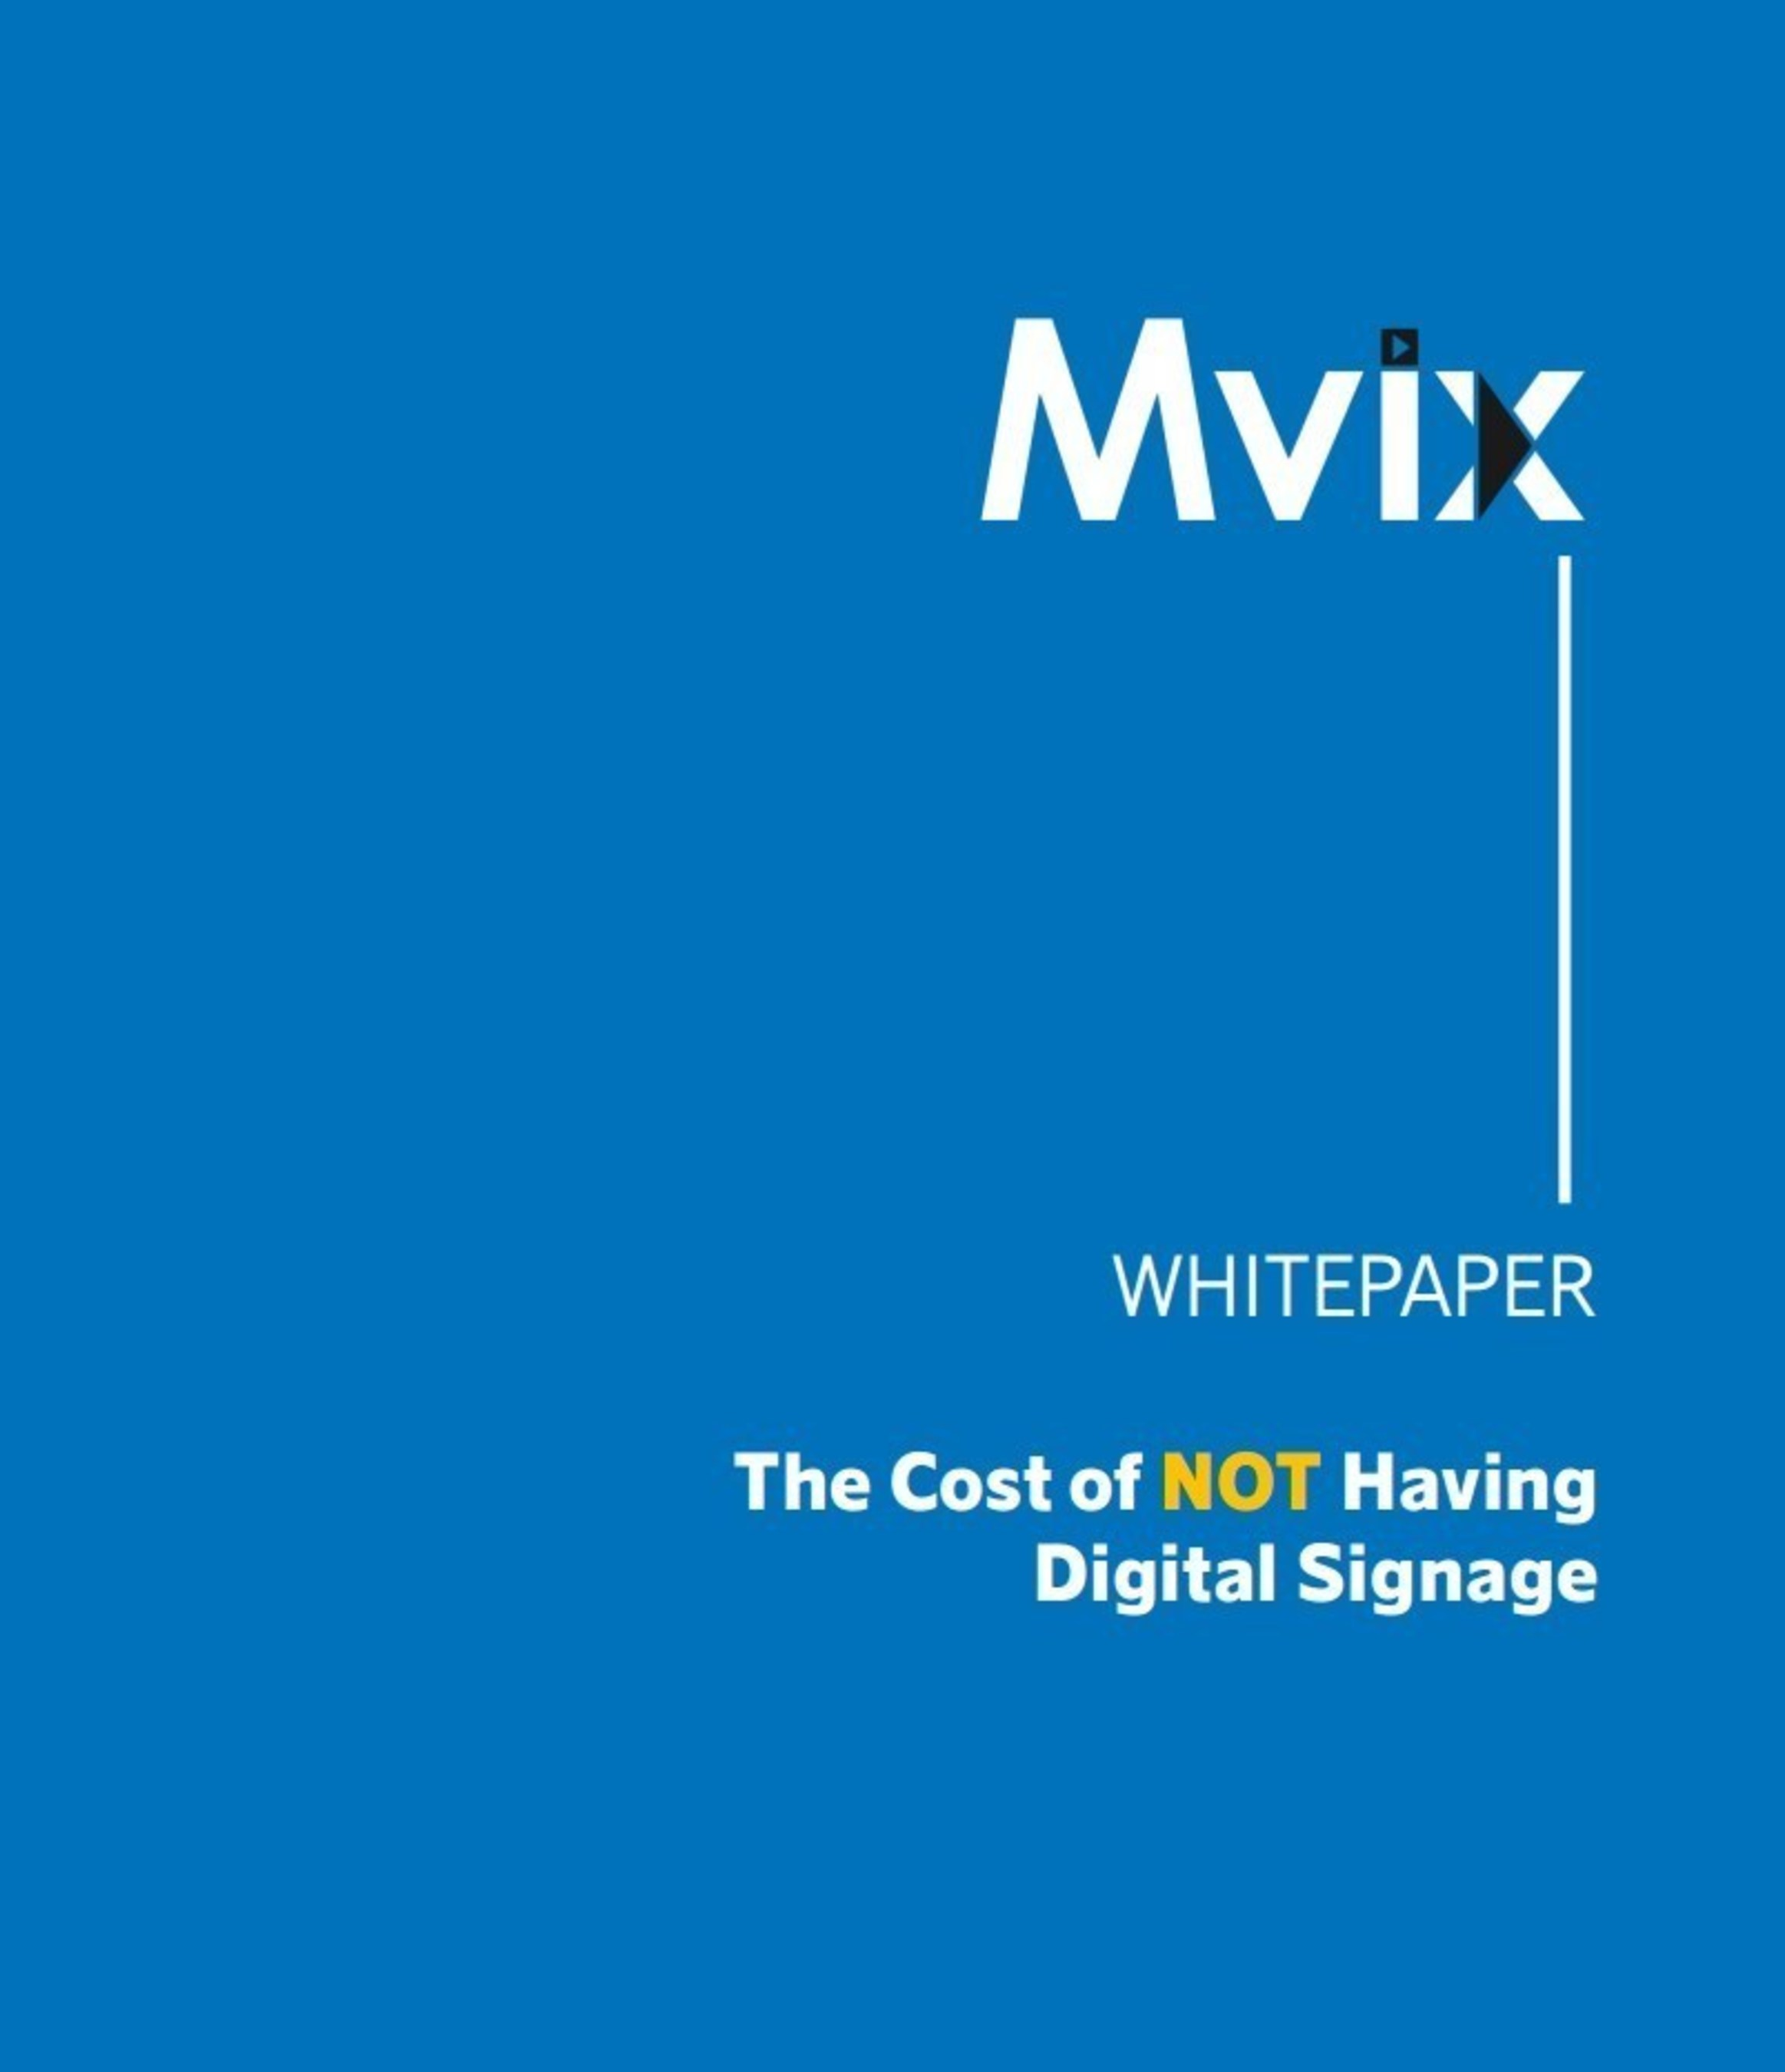 New Thought Leadership Paper Discusses The Cost of Not